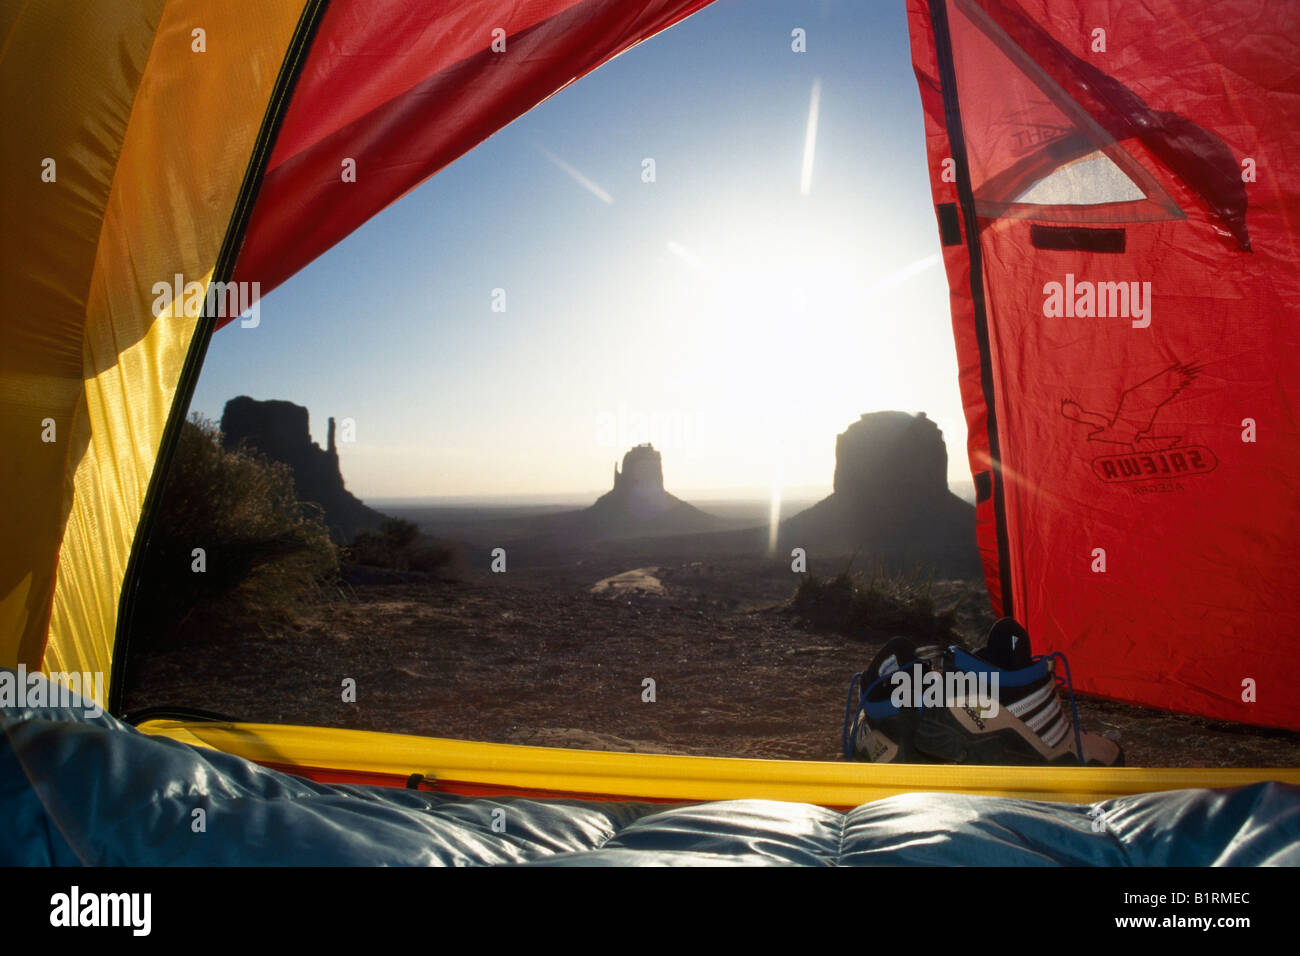 View from a tent on monument valley, Utah, USA - Stock Image